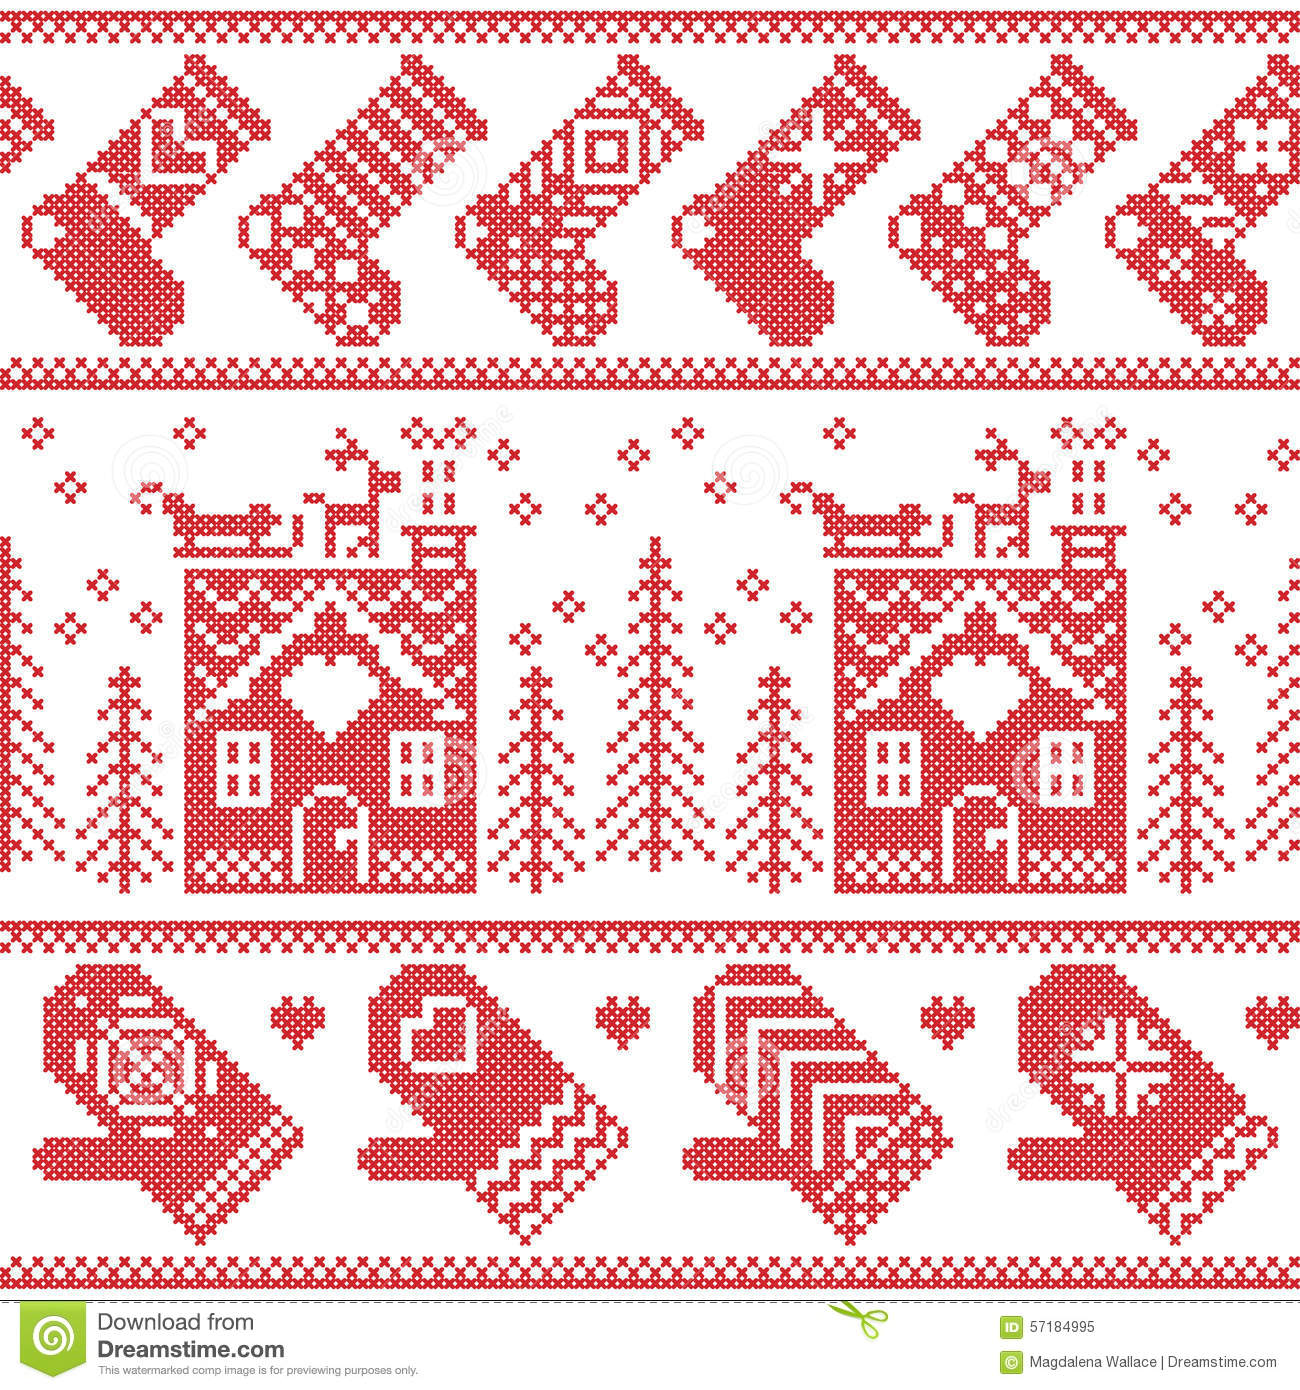 Nordic christmas ornaments - Scandinavian Nordic Christmas Seamless Pattern With Ginger Bread House Stockings Gloves Reindeer